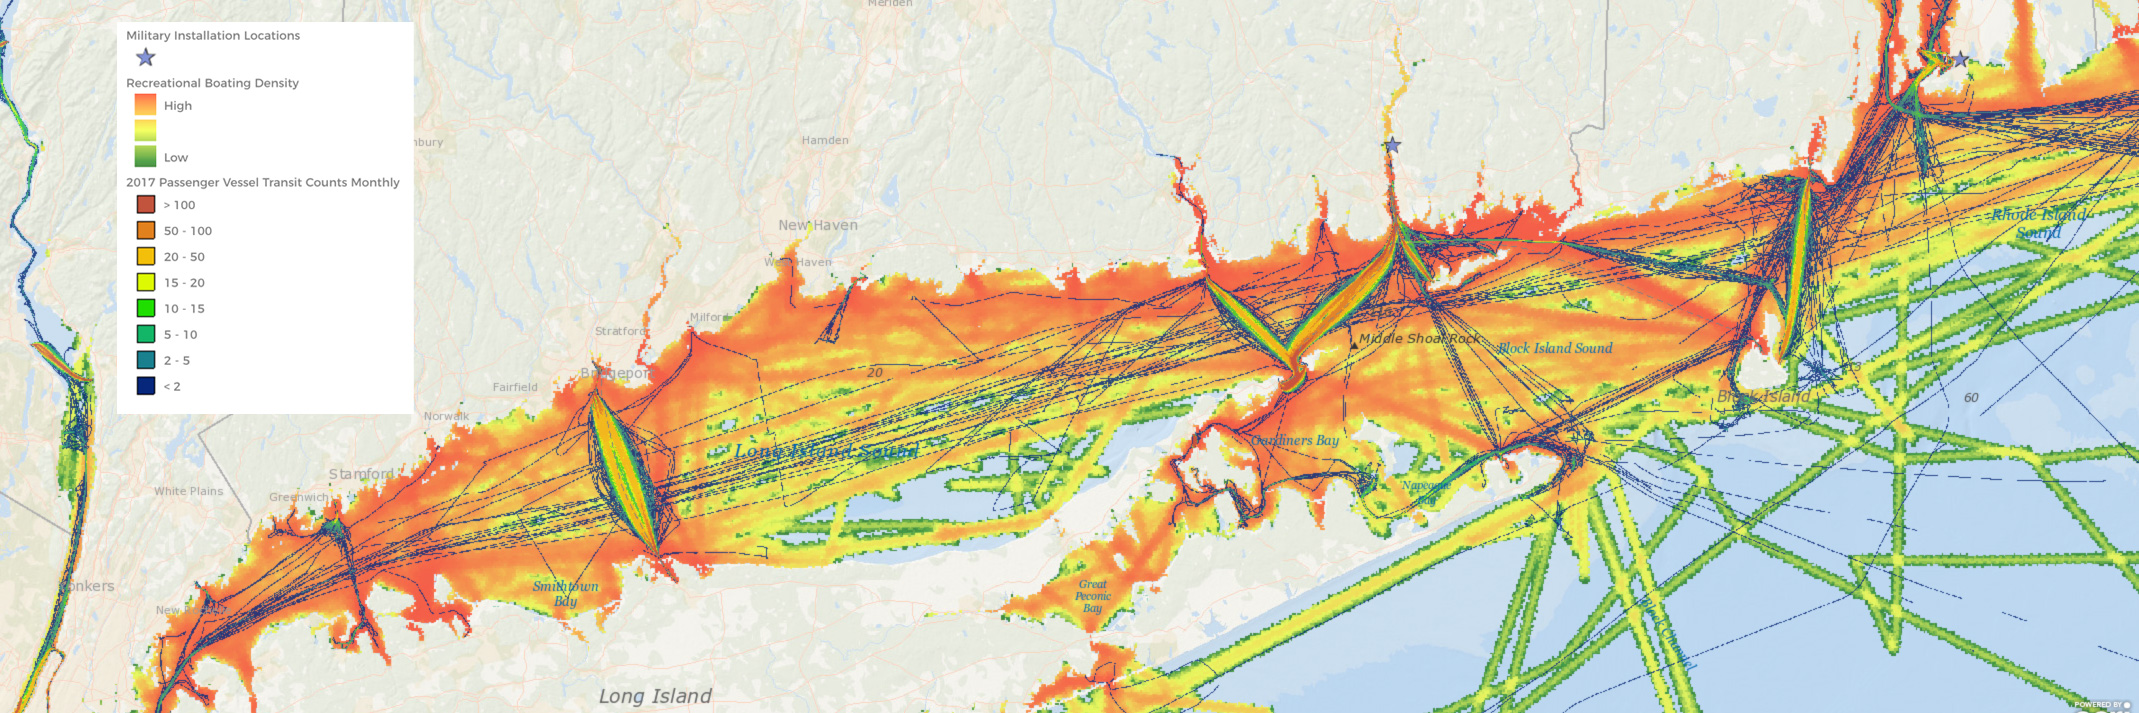 Screenshot of a Portal map showing ferry traffic and recreational boating density in Long Island Sound.